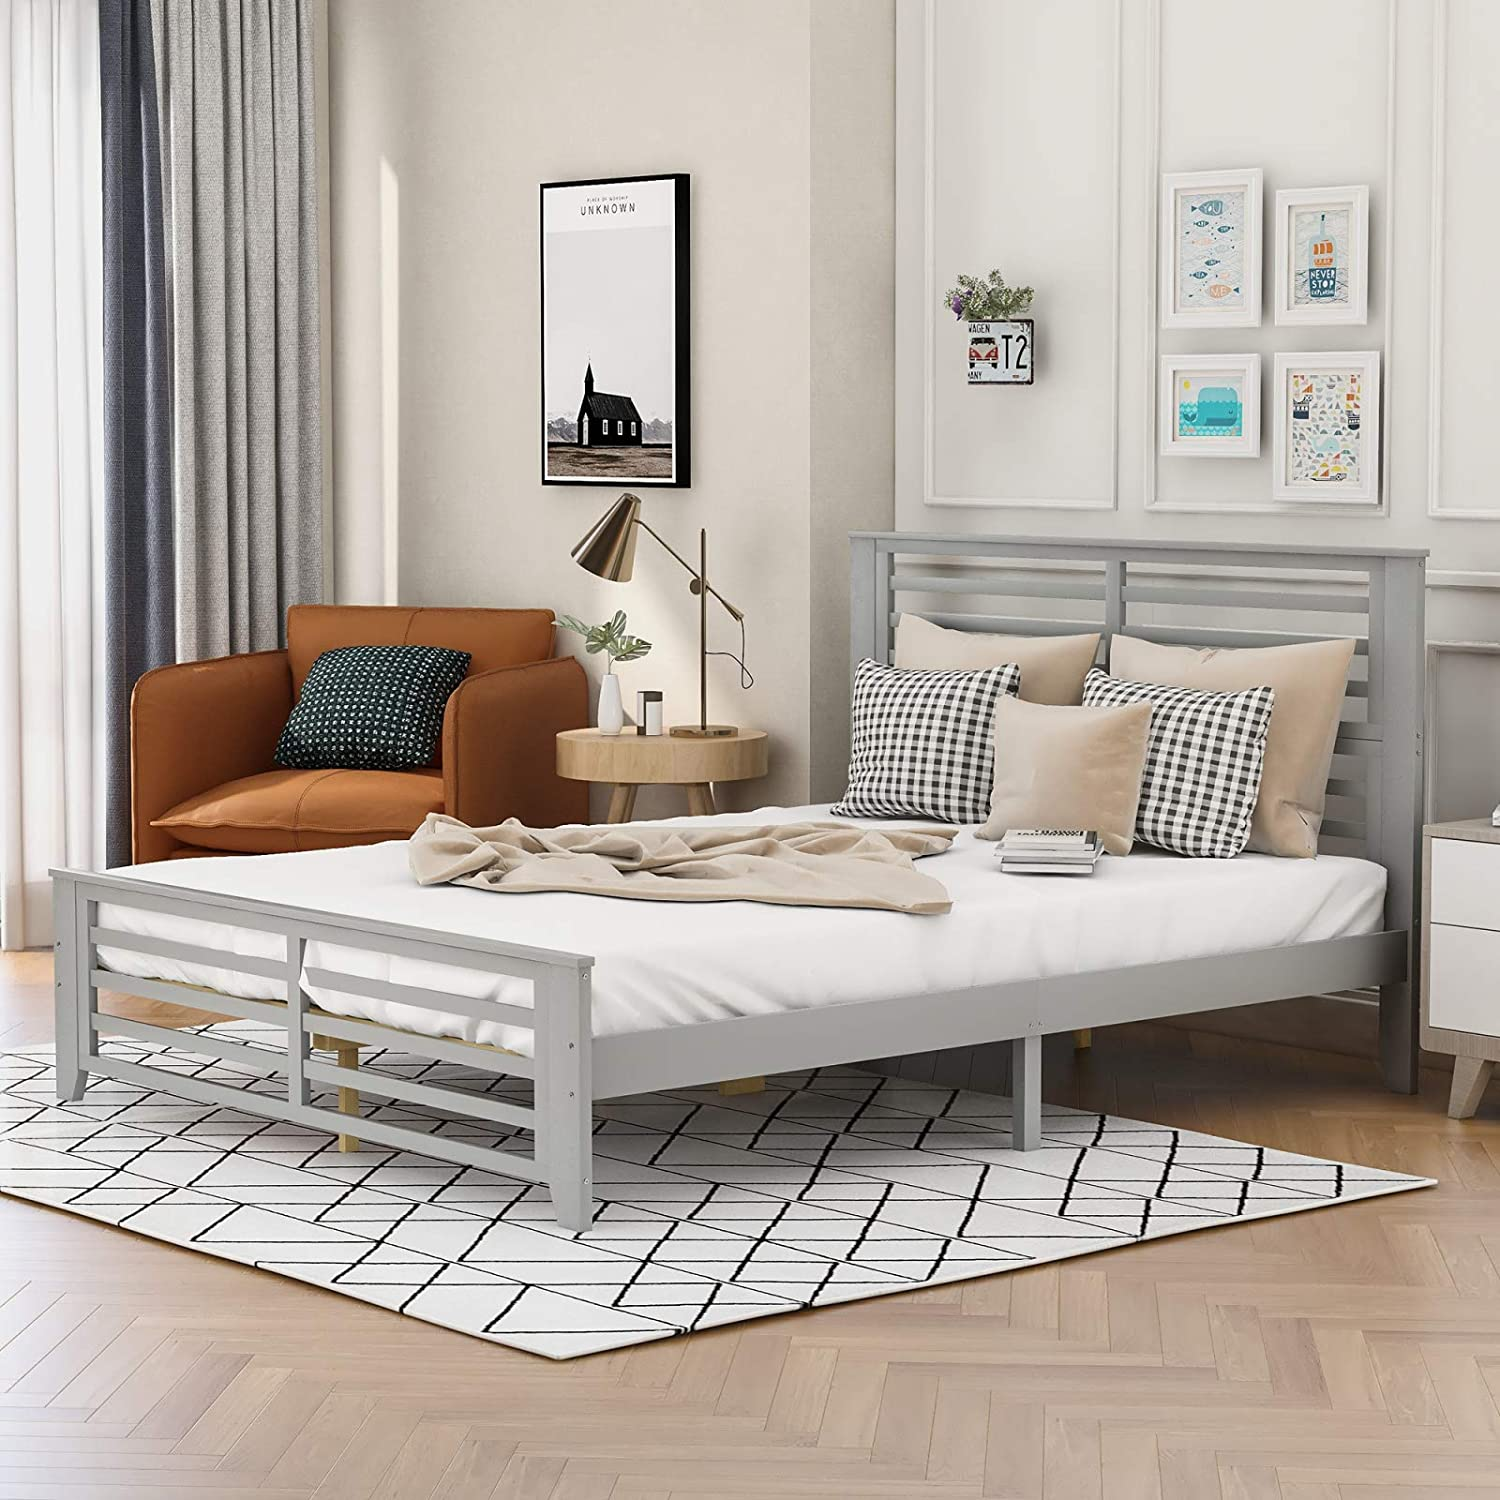 PovKeever - Platform Bed Overseas parallel import regular item with Shape Horizontal Fresno Mall Hollow Strip Que